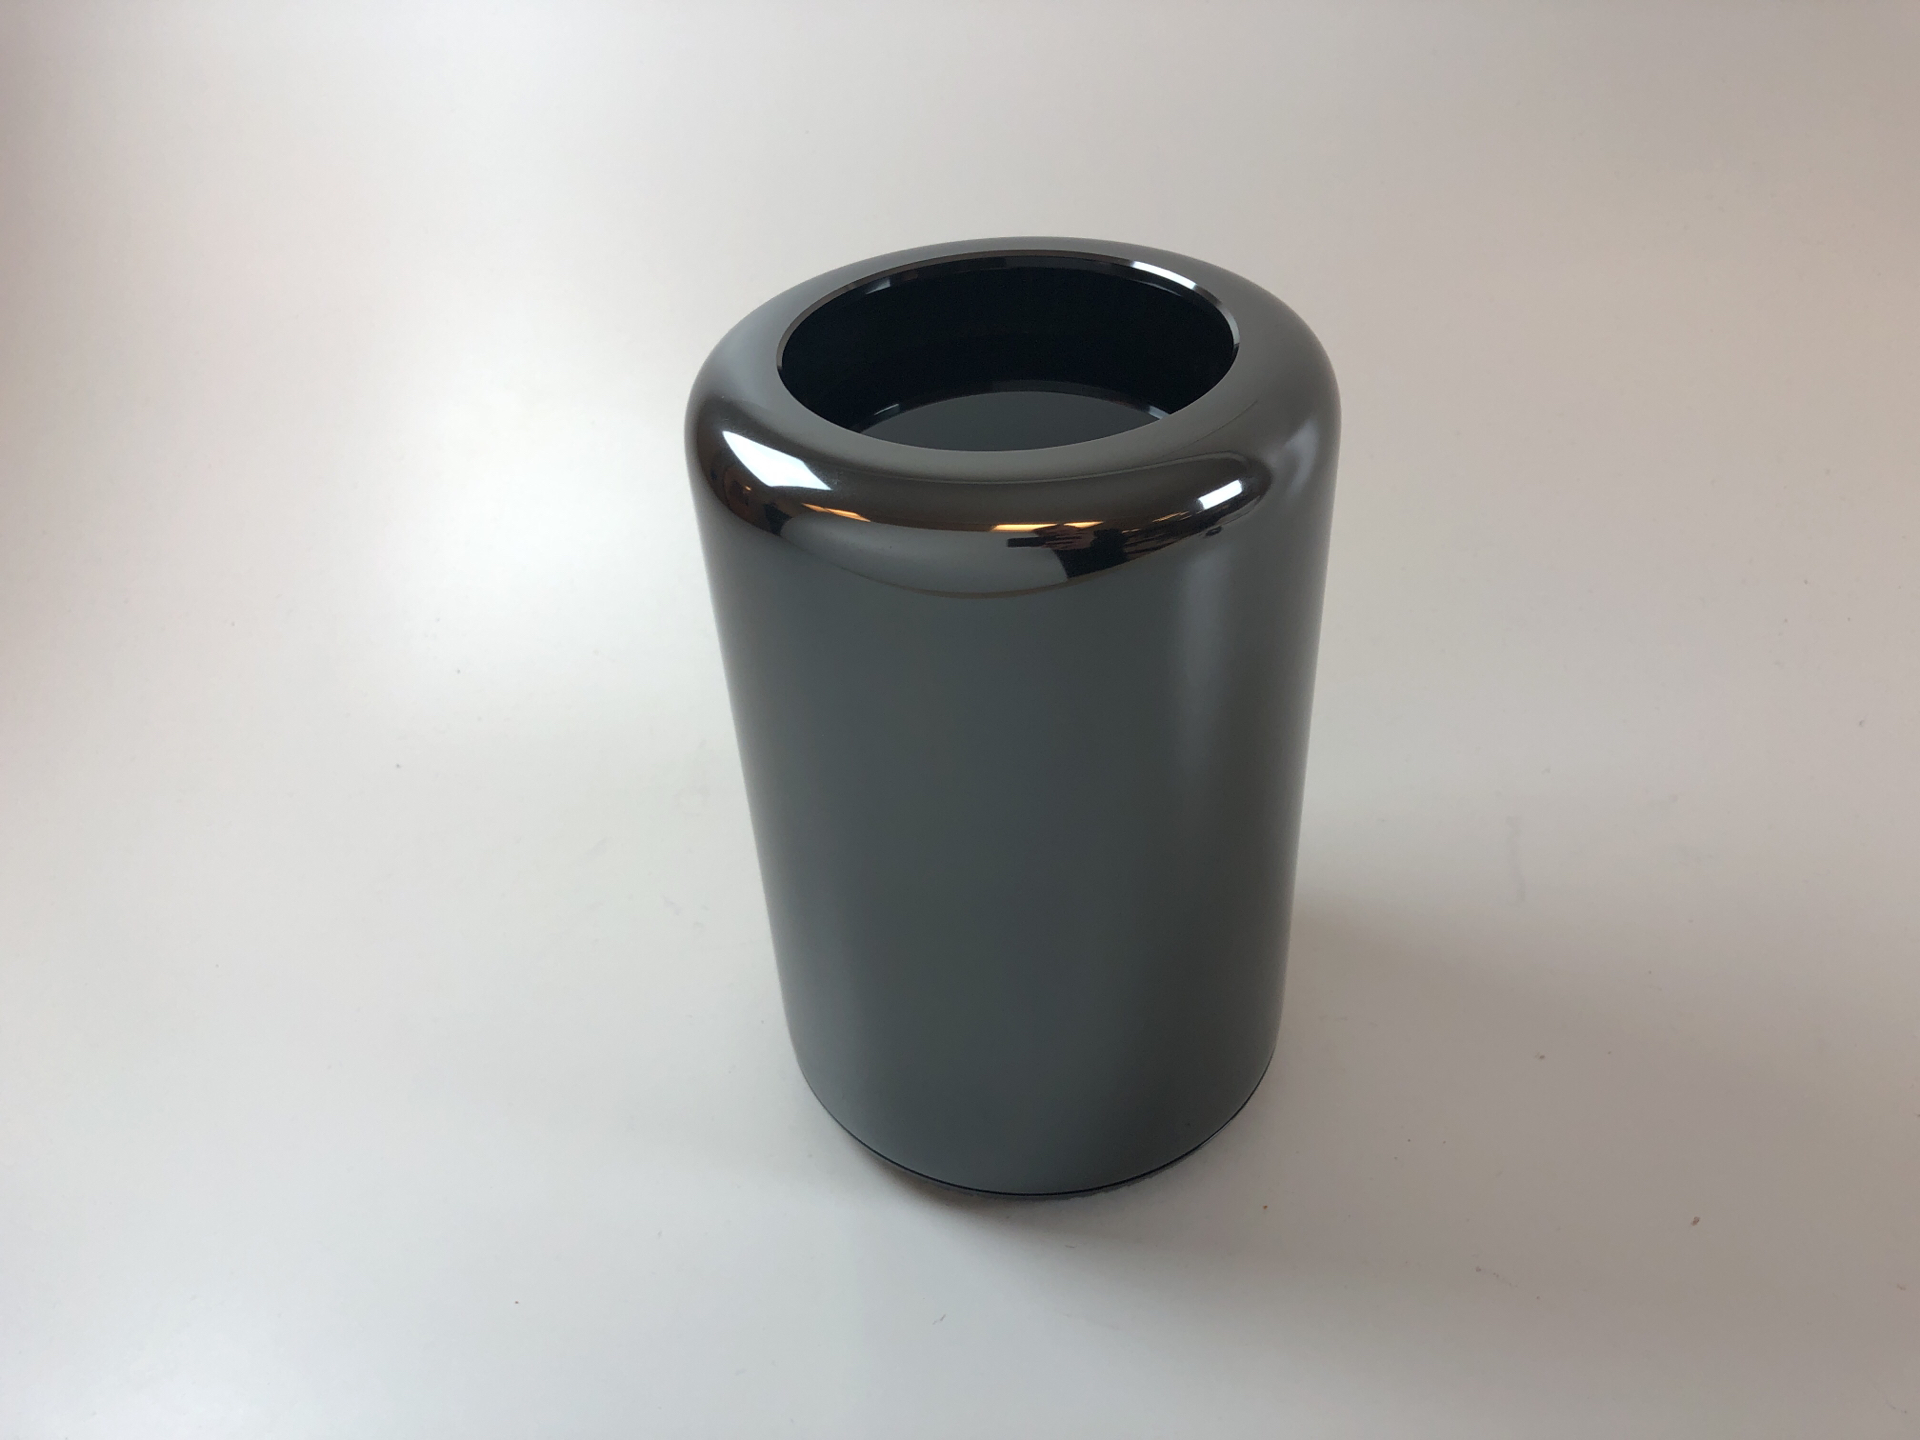 Mac Pro Late 2013 (Intel 8-Core Xeon 3.0 GHz 32 GB RAM 512 GB SSD), Intel 8-Core Xeon 3.0 GHz, 32 GB RAM, 512 GB SSD, Bild 1